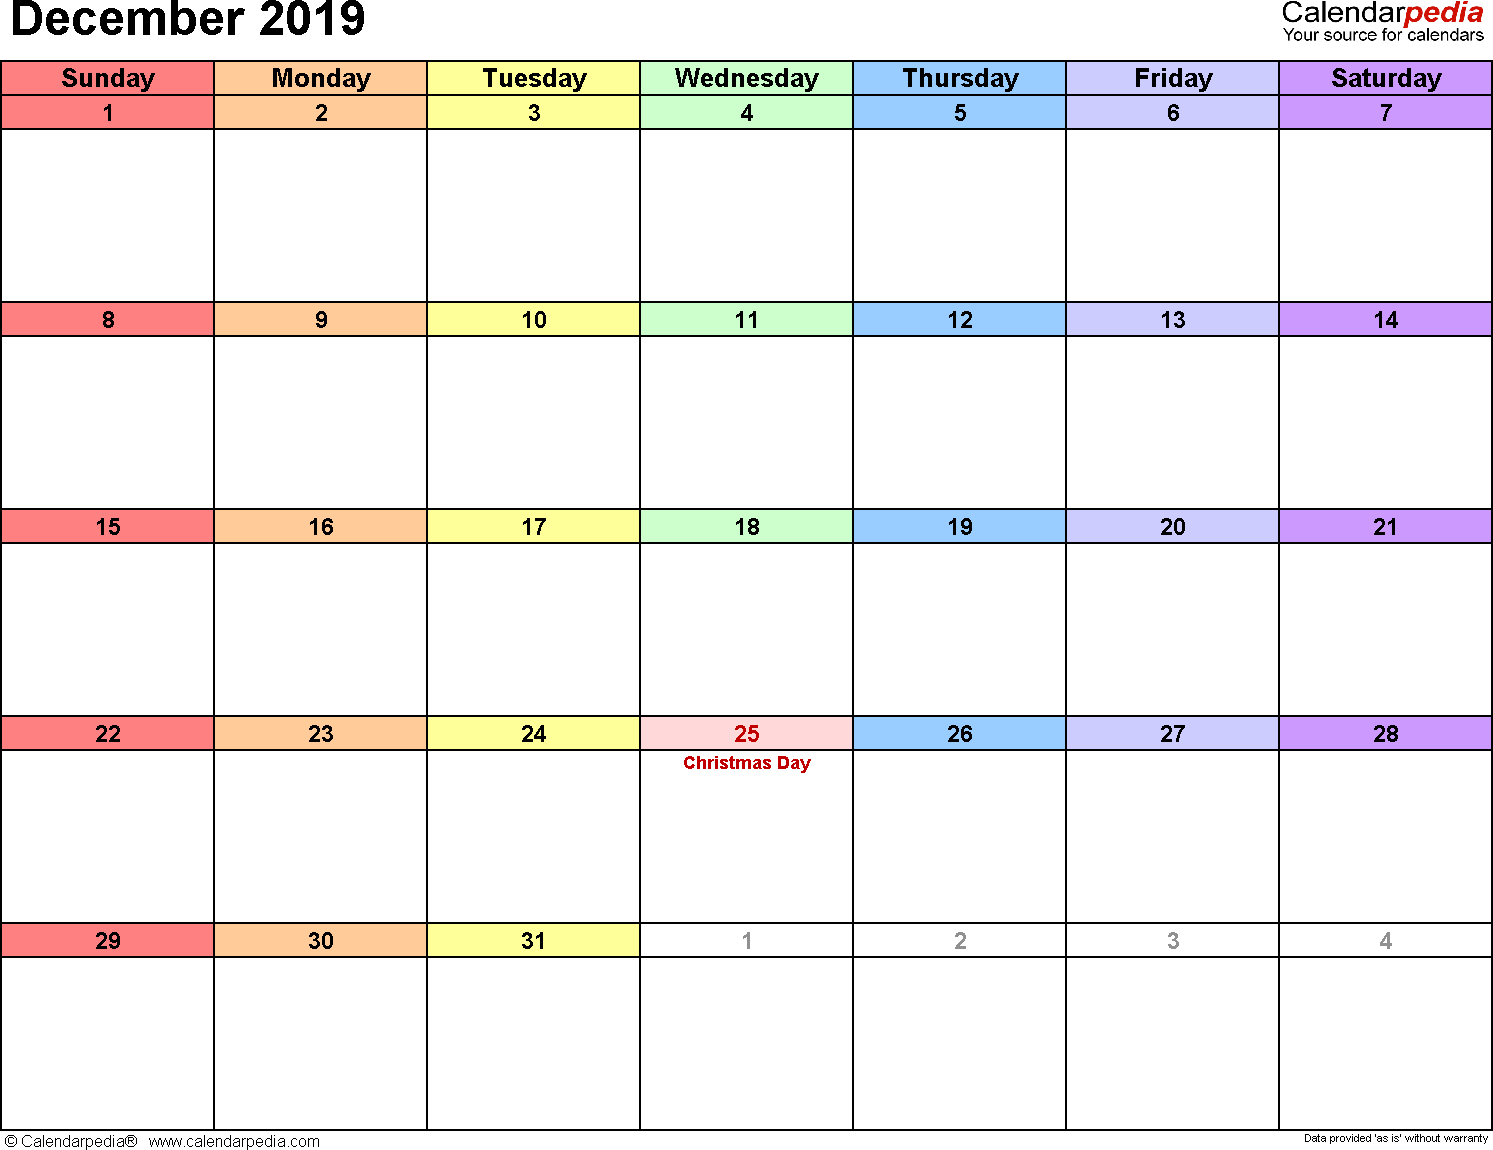 Task Monthly Calendar Templates For September To December 2020 December 2019 Calendars for Word, Excel & PDF